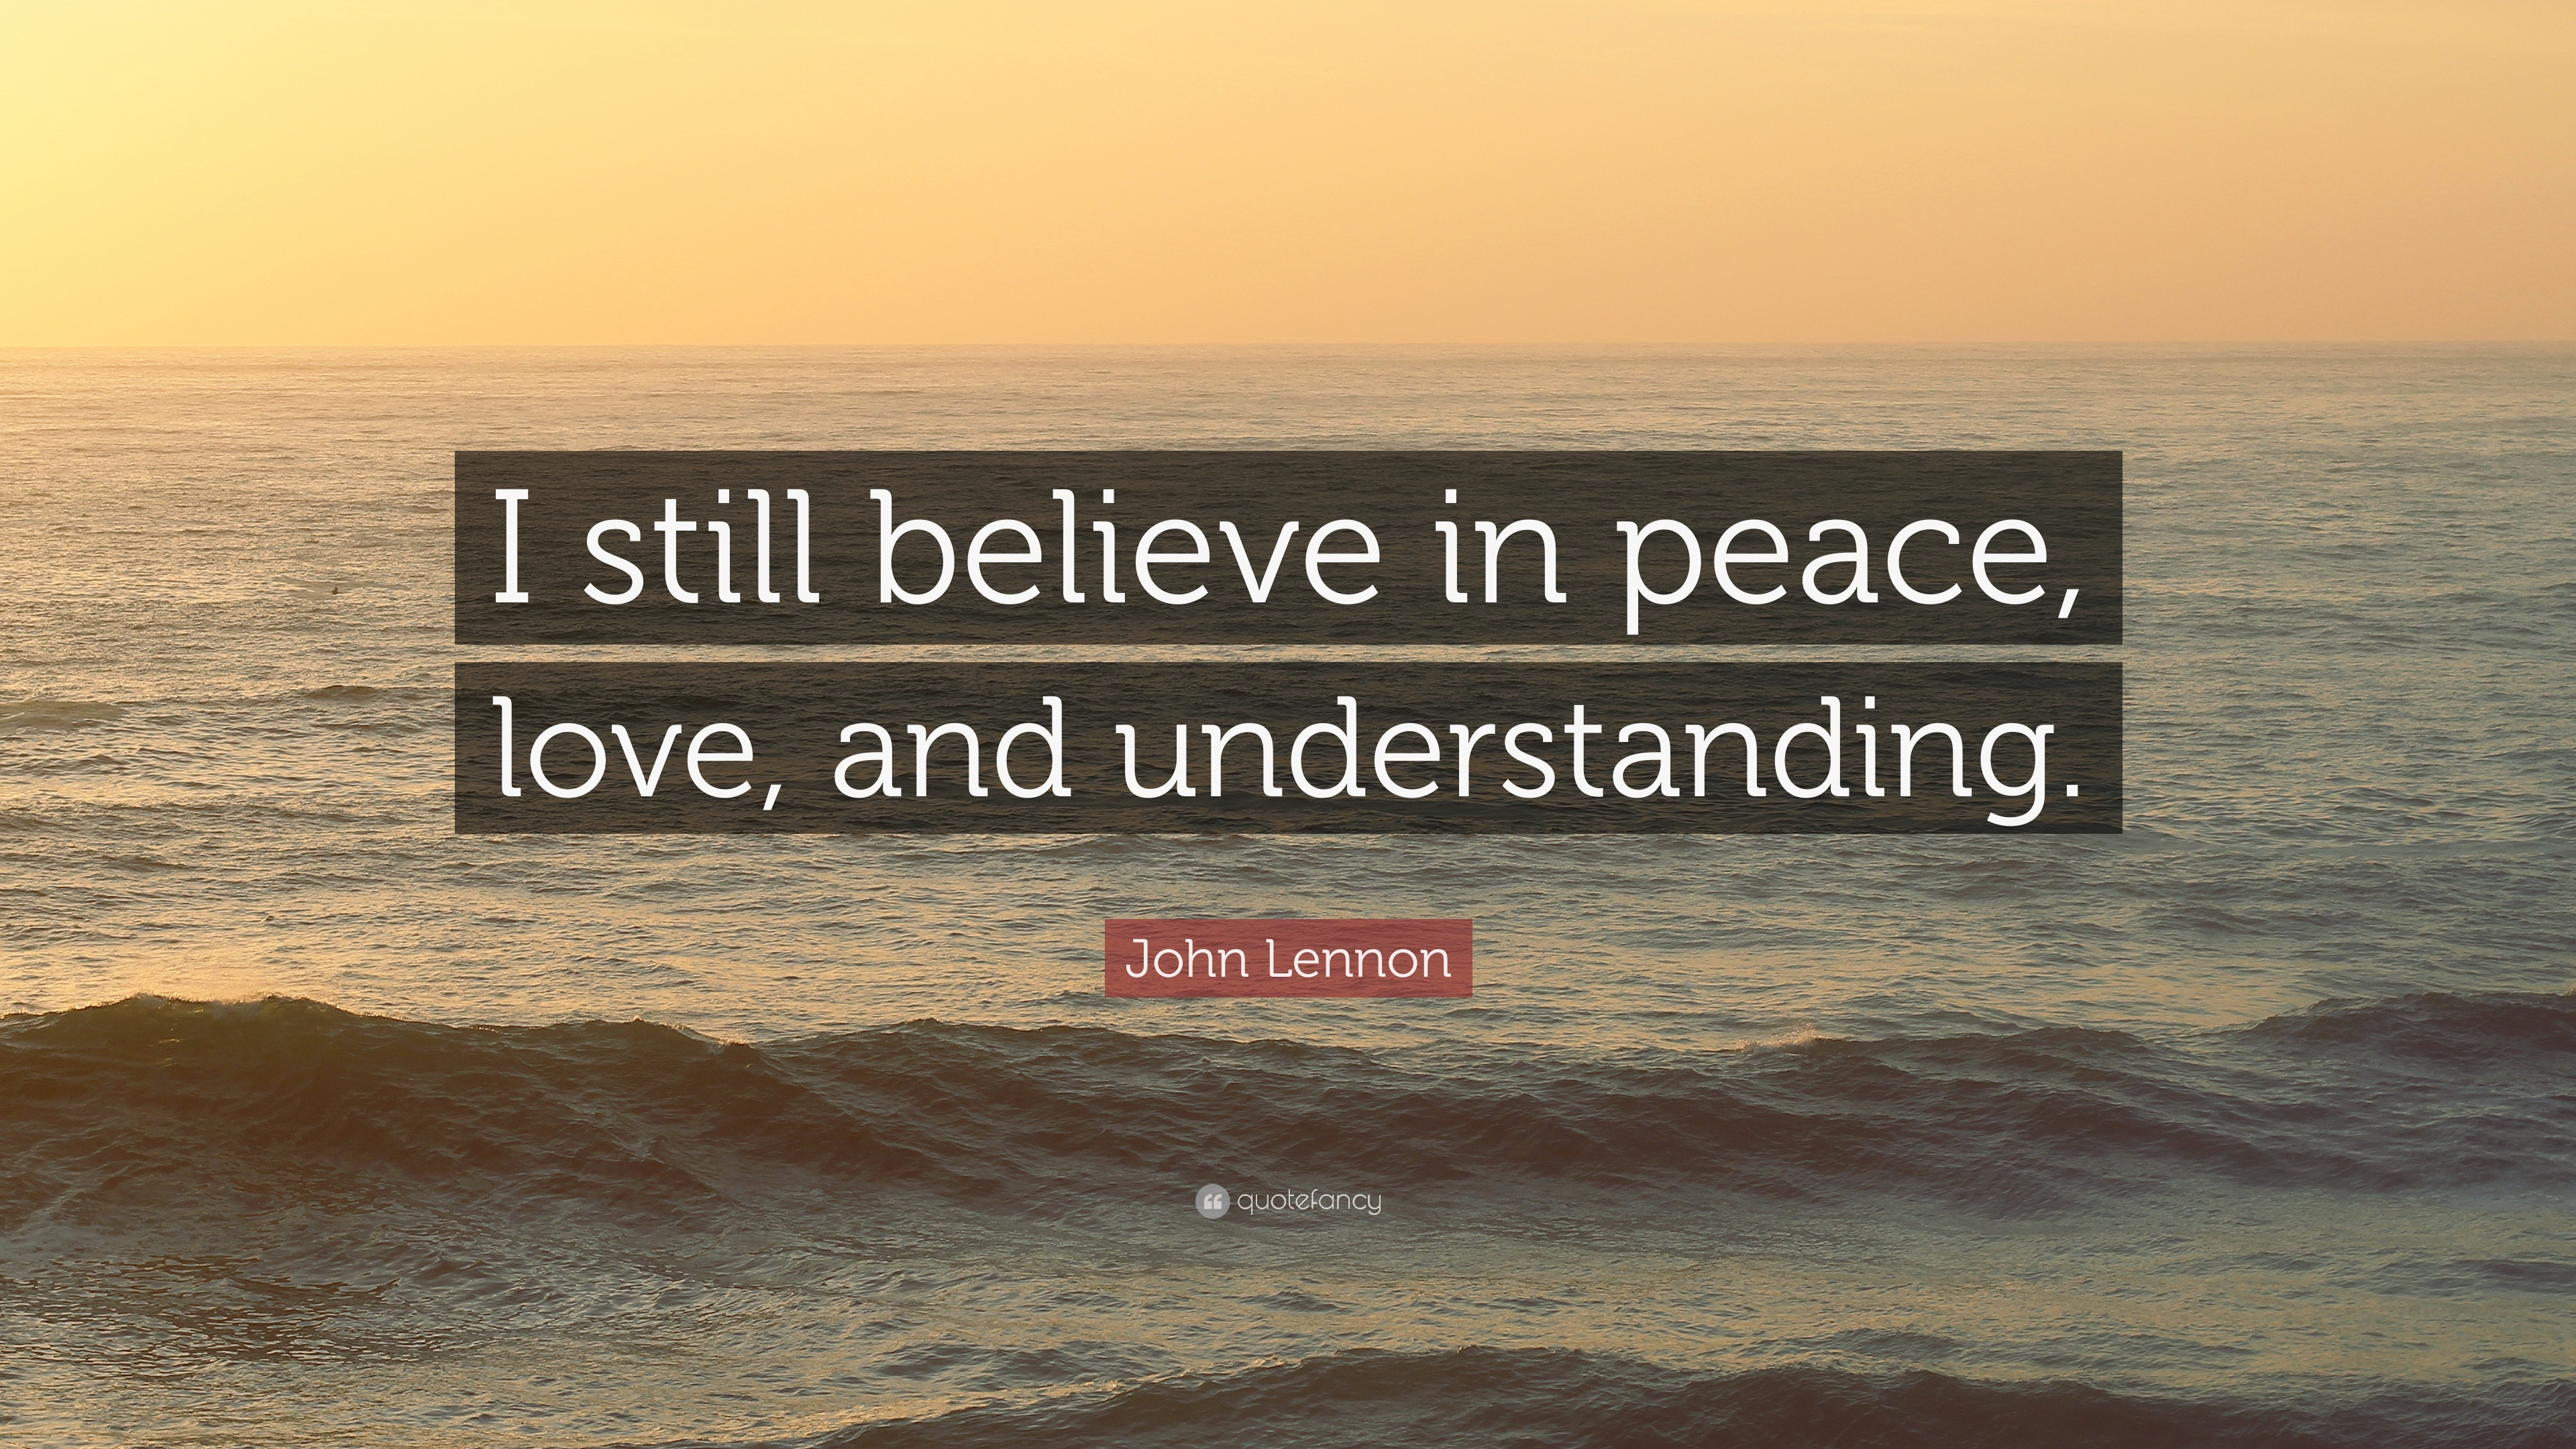 John Lennon Quote: U201cI Still Believe In Peace, Love, And Understanding.